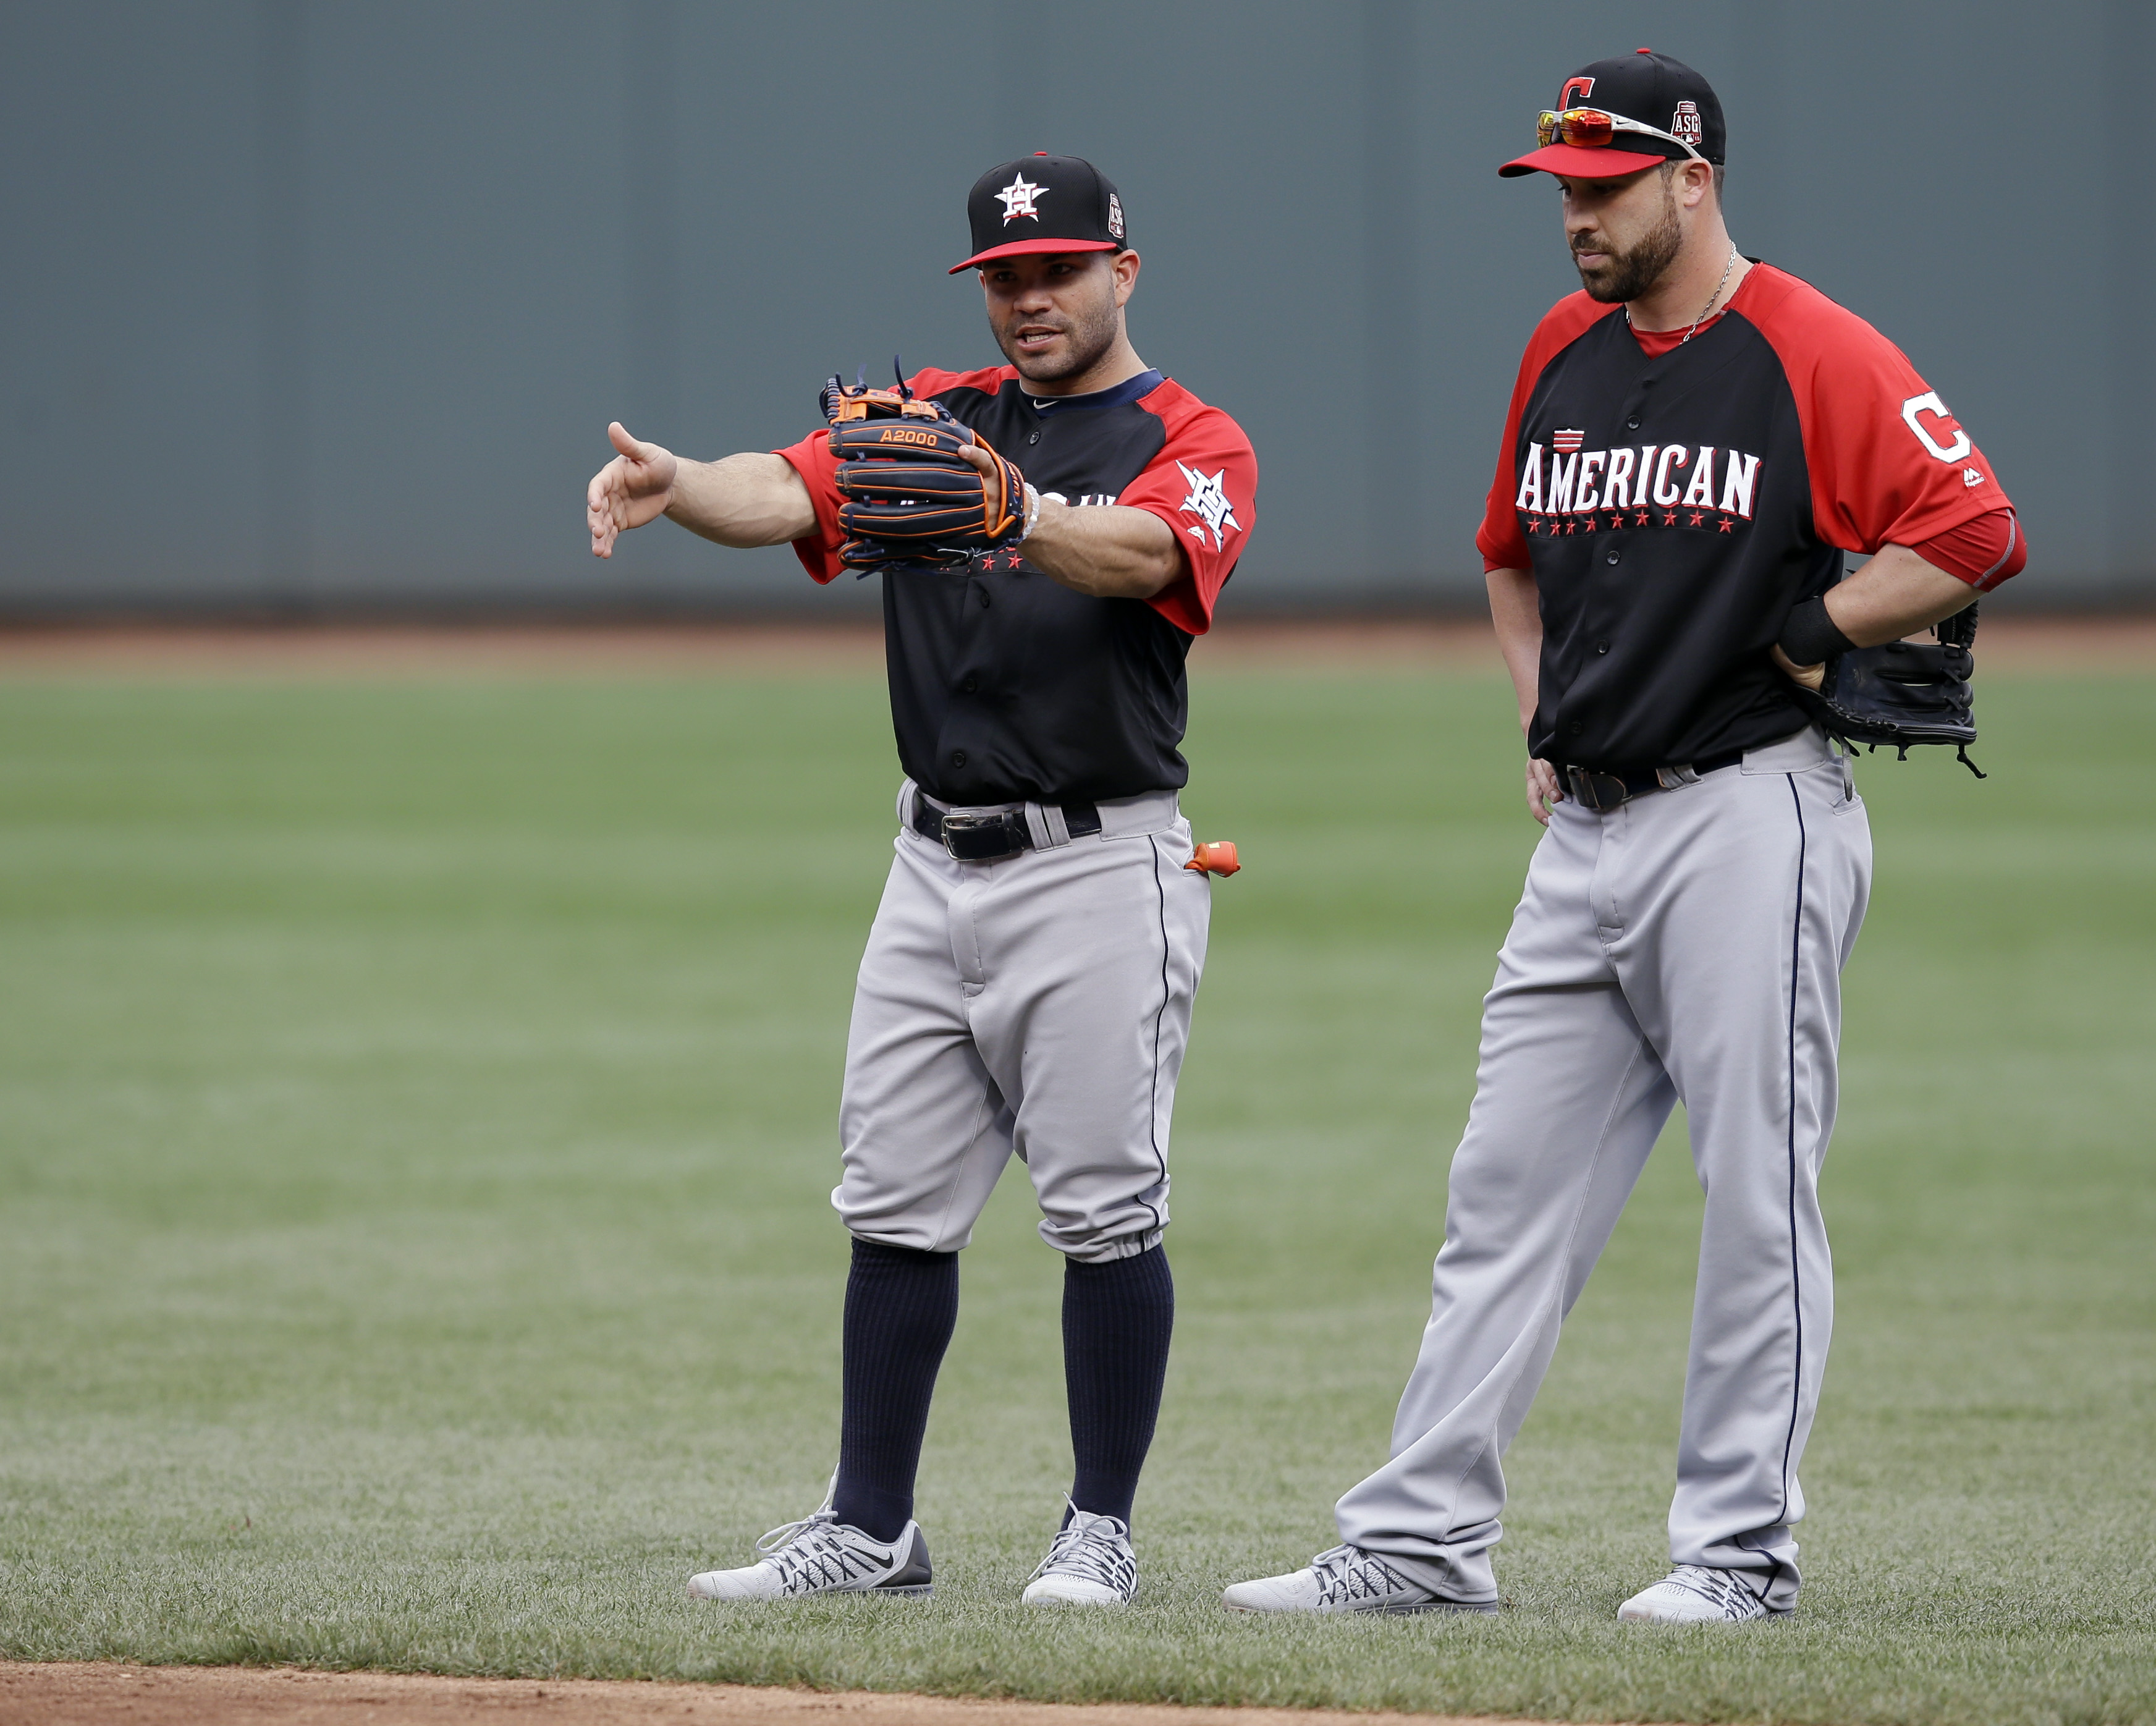 American League's Jose Altuve, left, of the Houston Astros, talks with Jason Kipnis, of the Cleveland Indians, during fielding practice before the MLB All-Star baseball game, Tuesday, July 14, 2015, in Cincinnati. (AP Photo/John Minchillo)